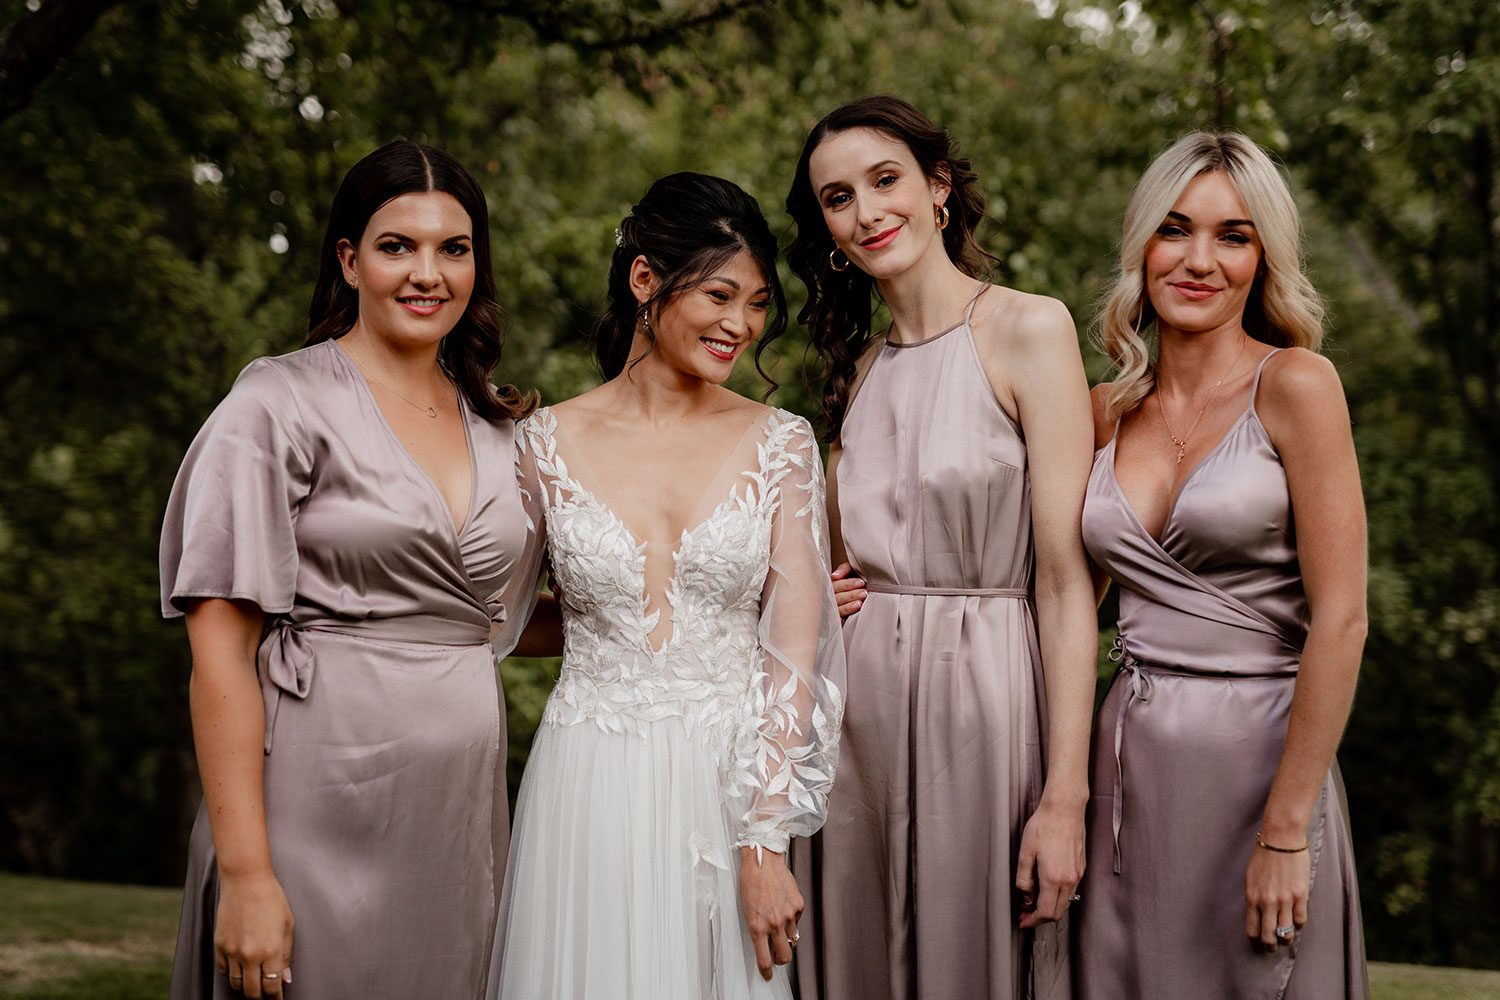 Bride wearing bespoke designer wedding dress by Vinka Bridal Boutique NZ, adorned with delicate applique lace and puffed sleeves - with bridesmaids